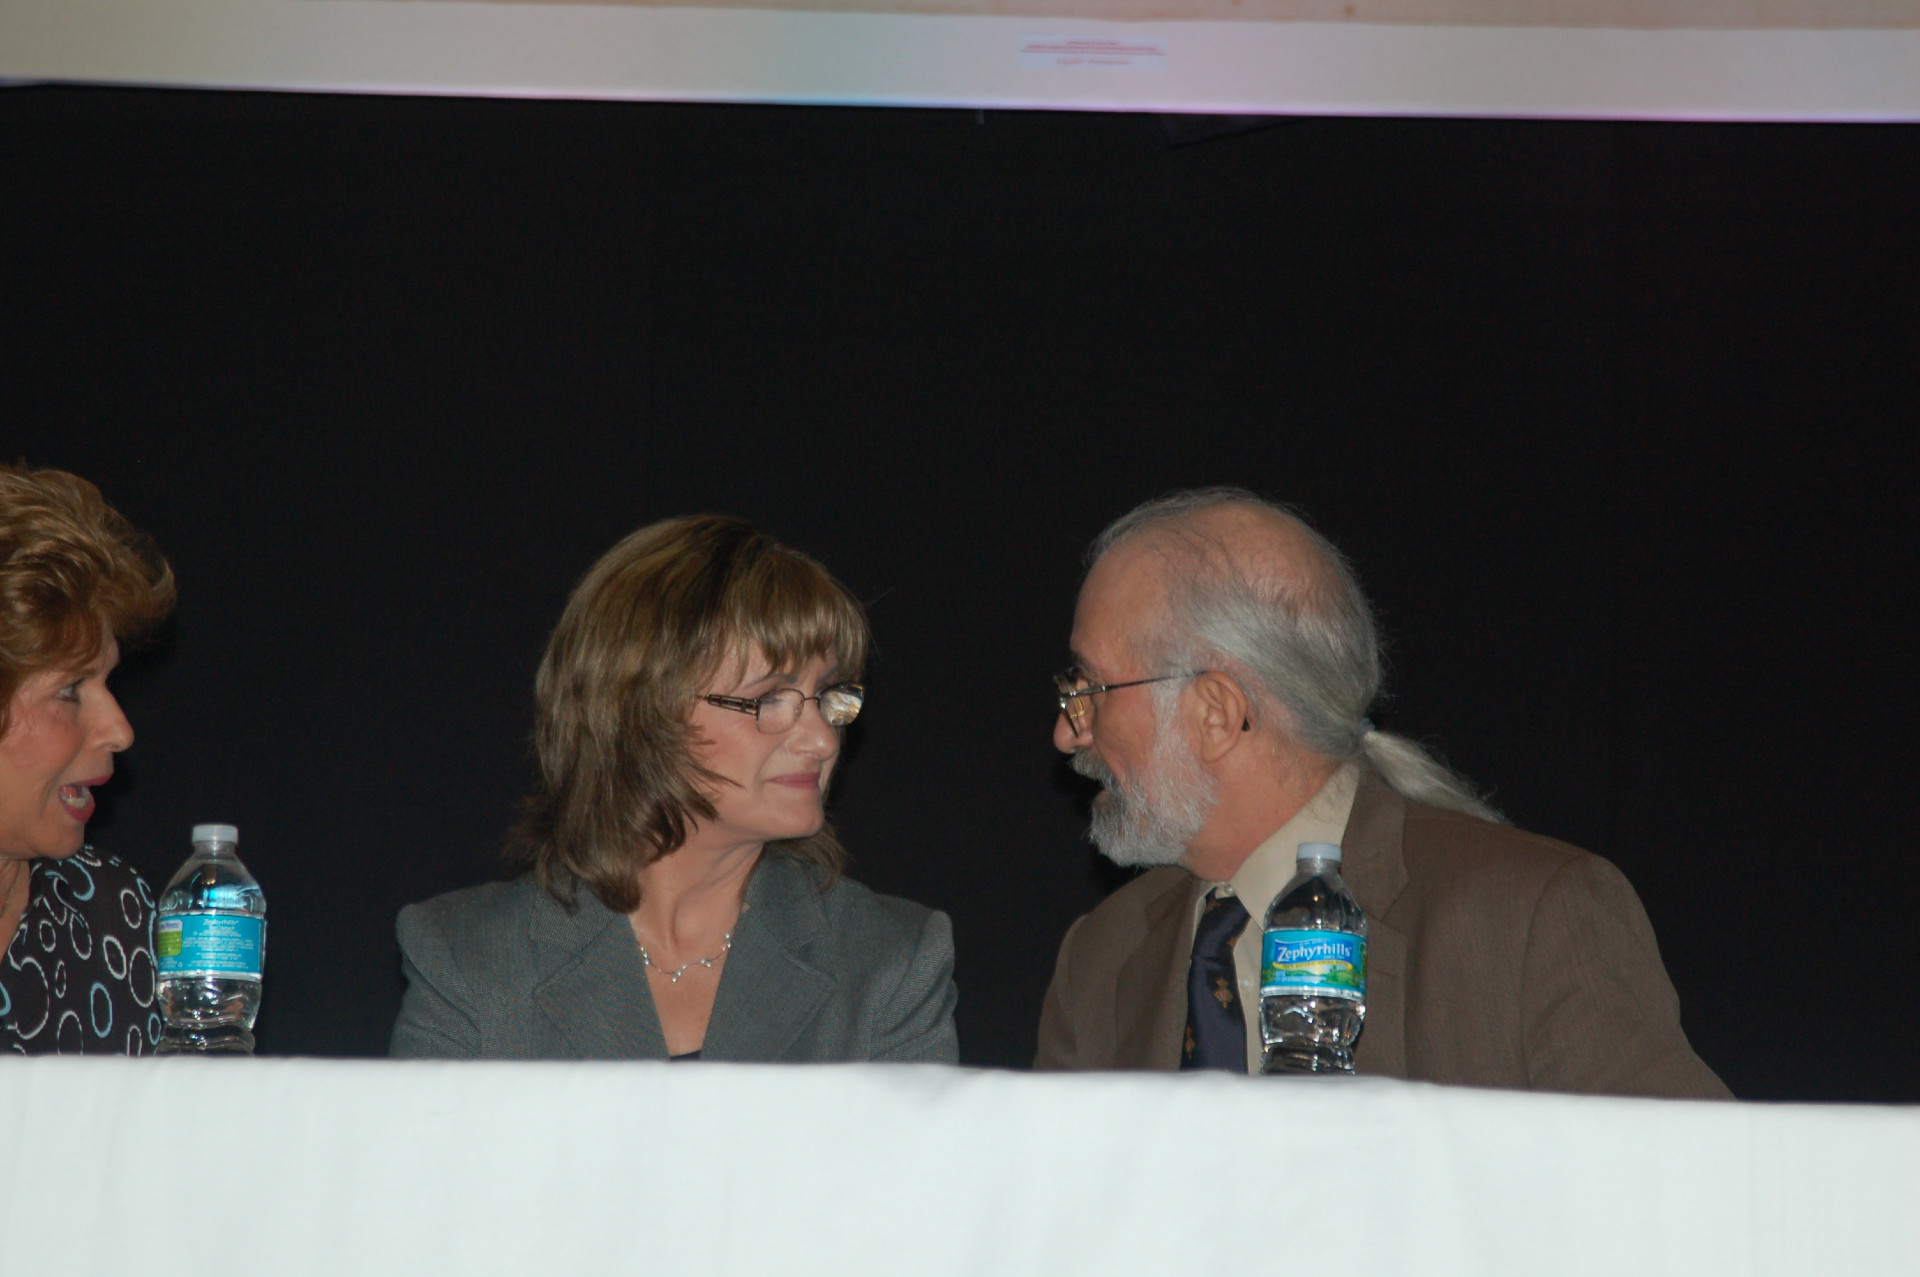 Conference Panama Janice Bennett and Barrie Schwortz